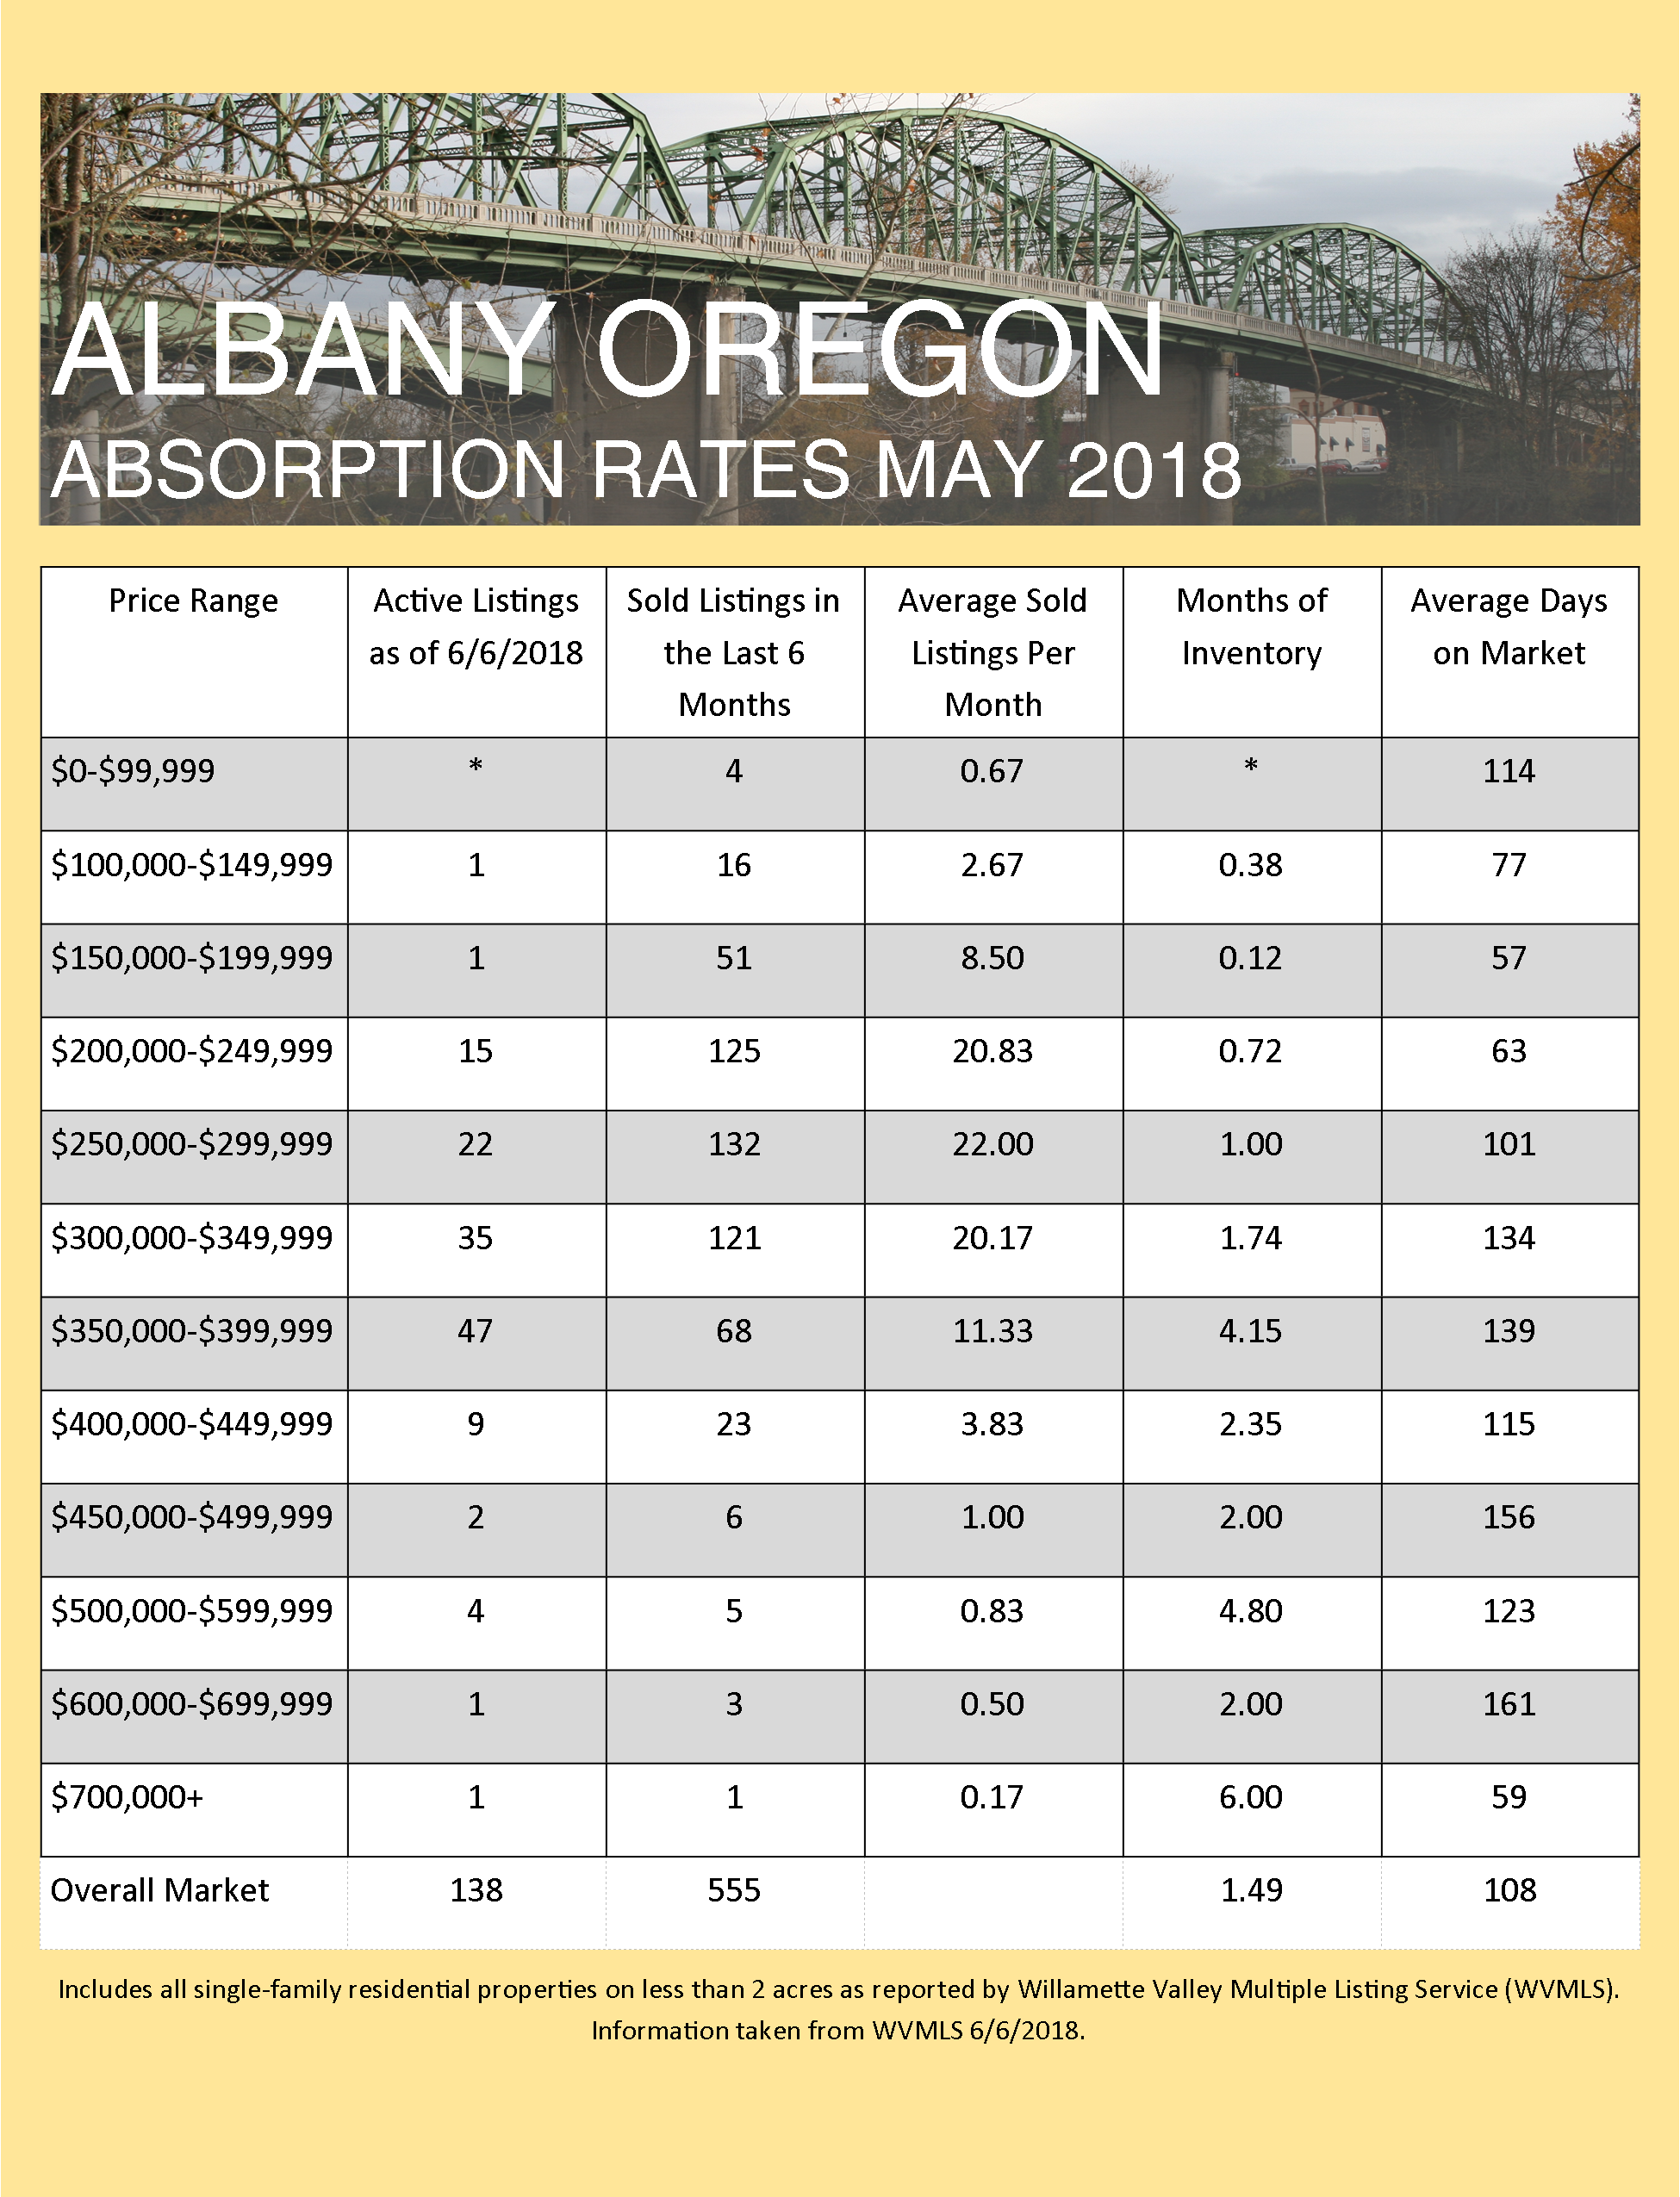 May 2018 Absorption Rates for Albany and Corvallis